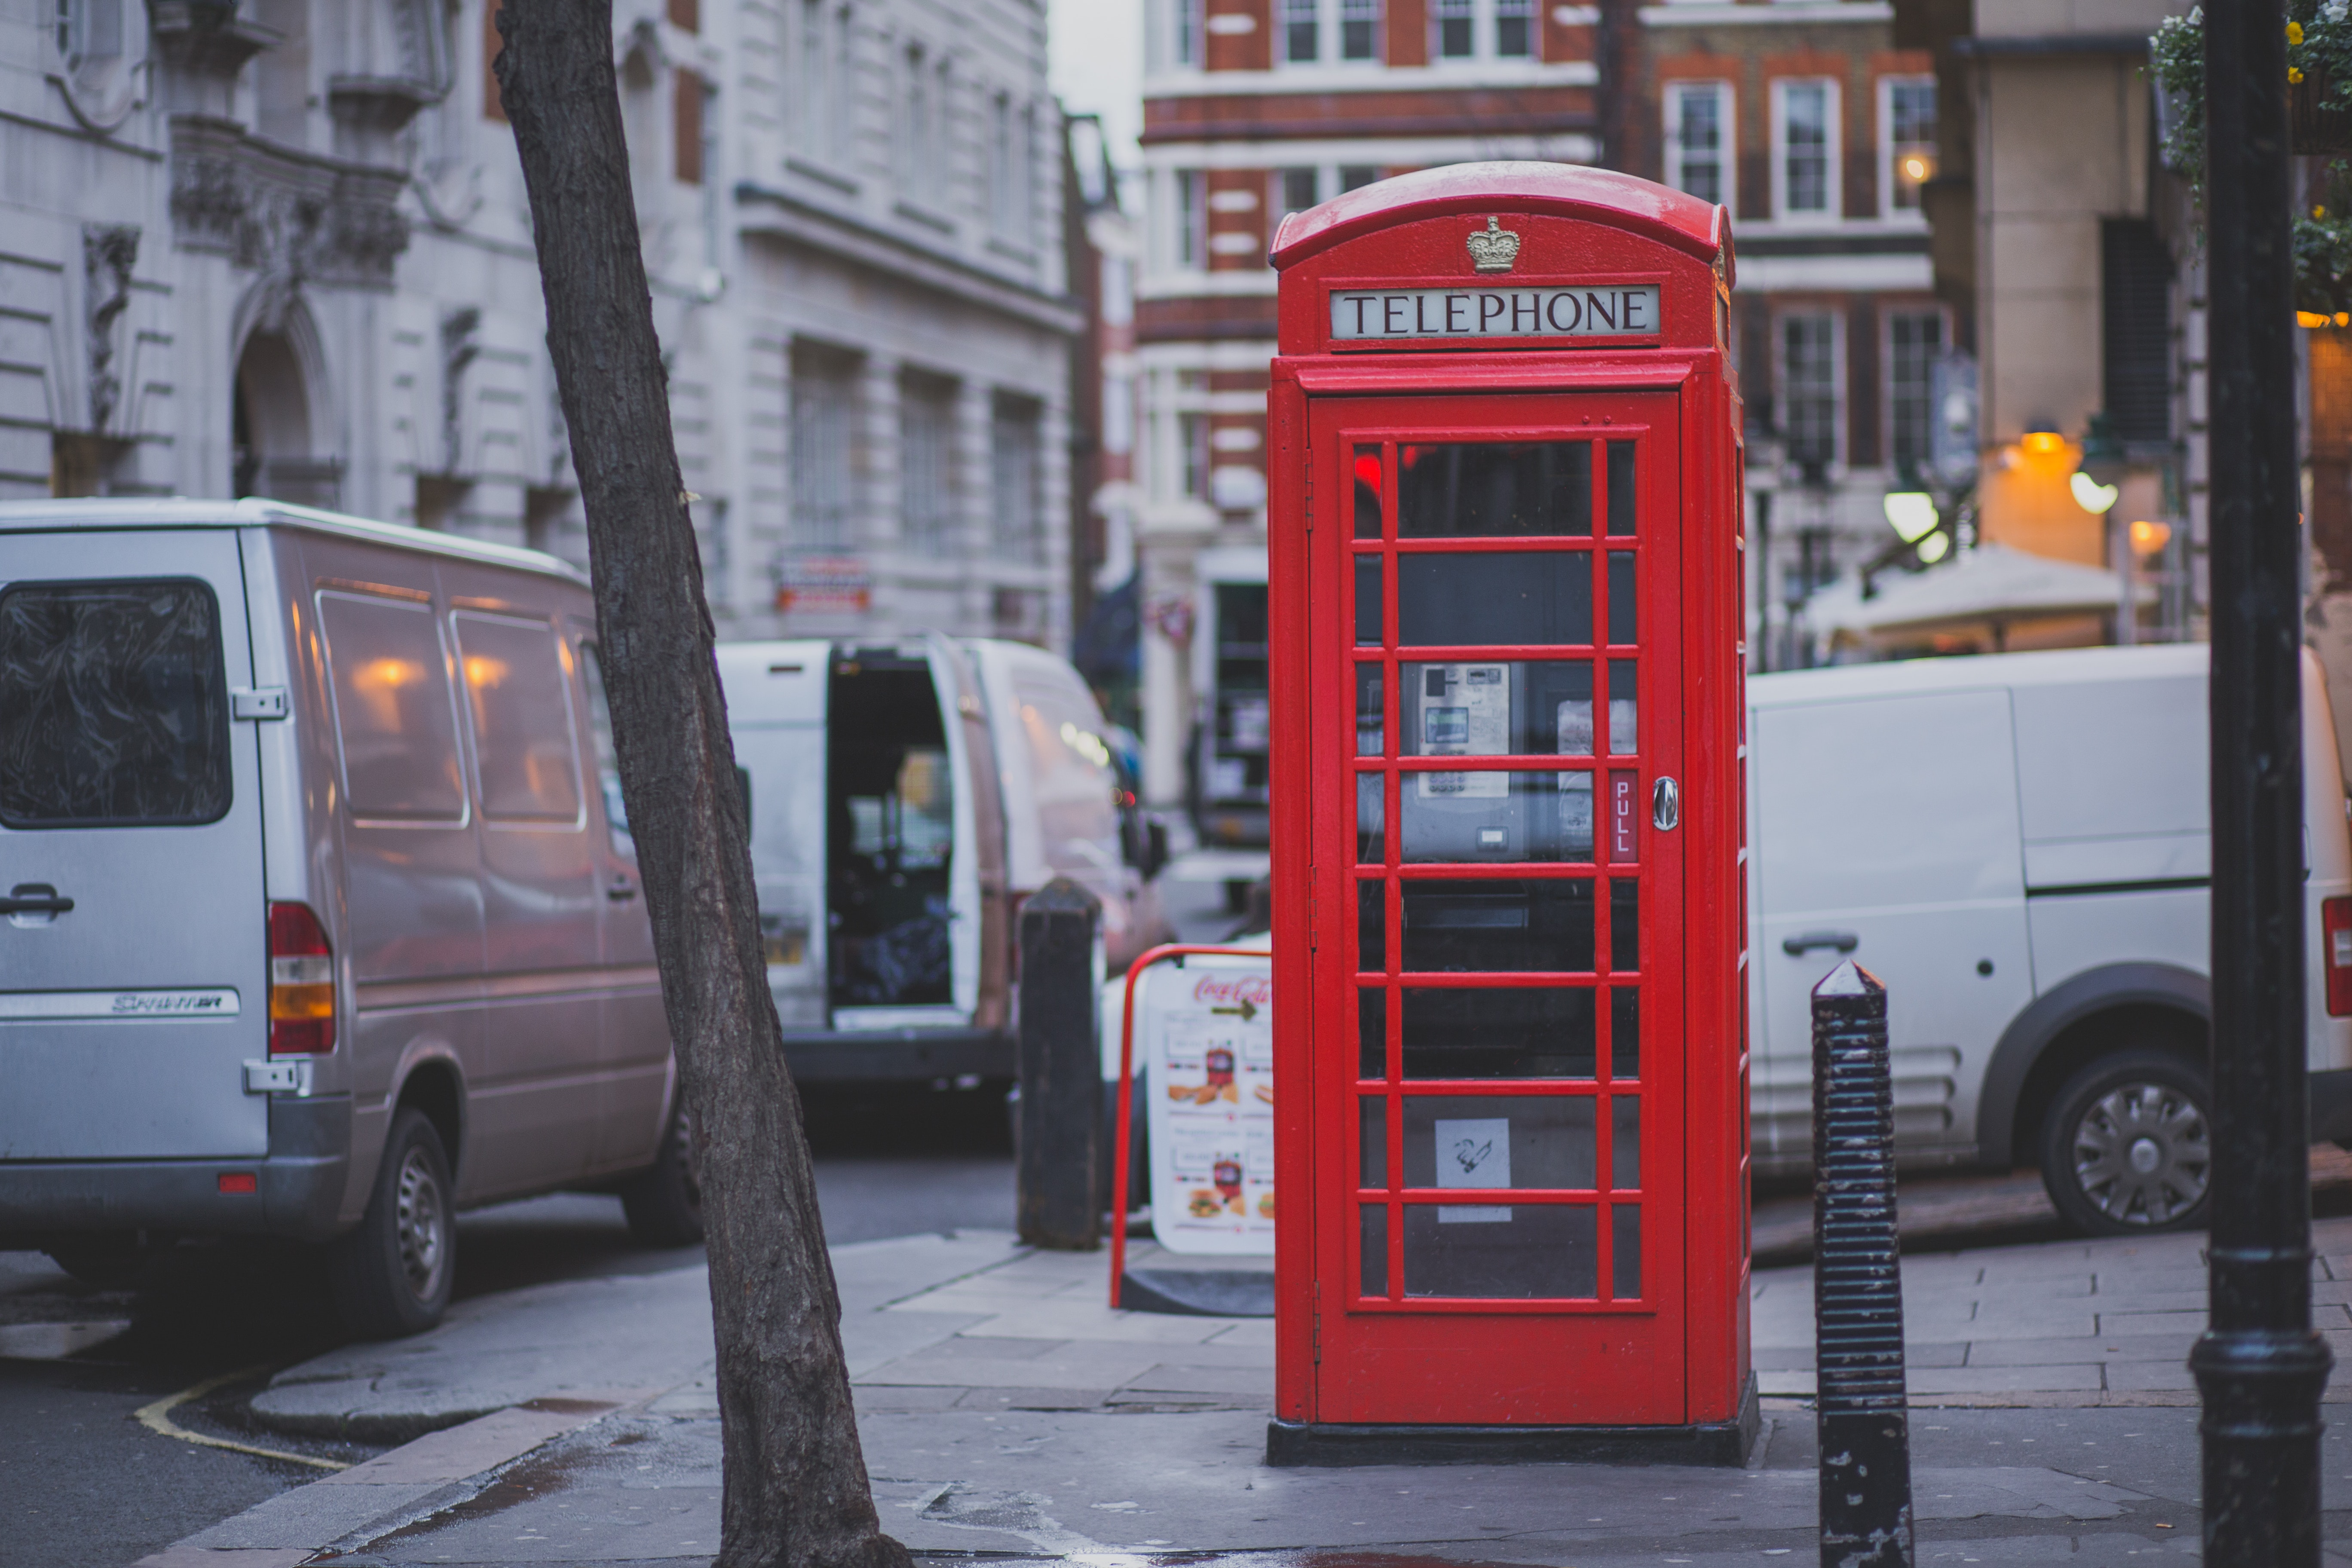 Red Telephone Shop Beside Brown Tree, Cars, Pavement, Phone booth, Street, HQ Photo